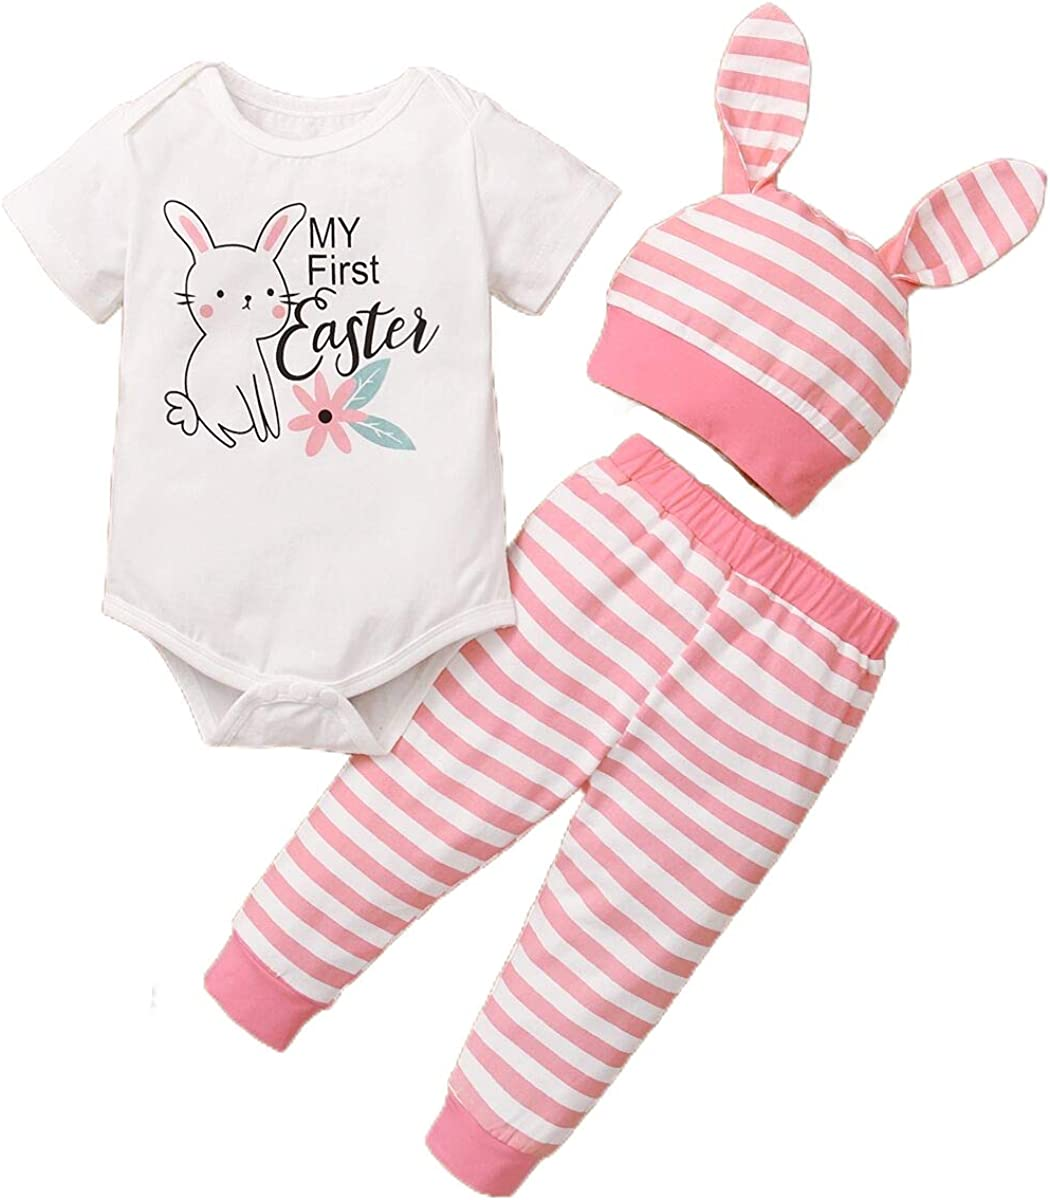 Infant Baby Boy Girl Easter Outfits My First Easter Romper Top + Bunny Pants + Rabbit Ears Hat Summer Clothes 3PCS